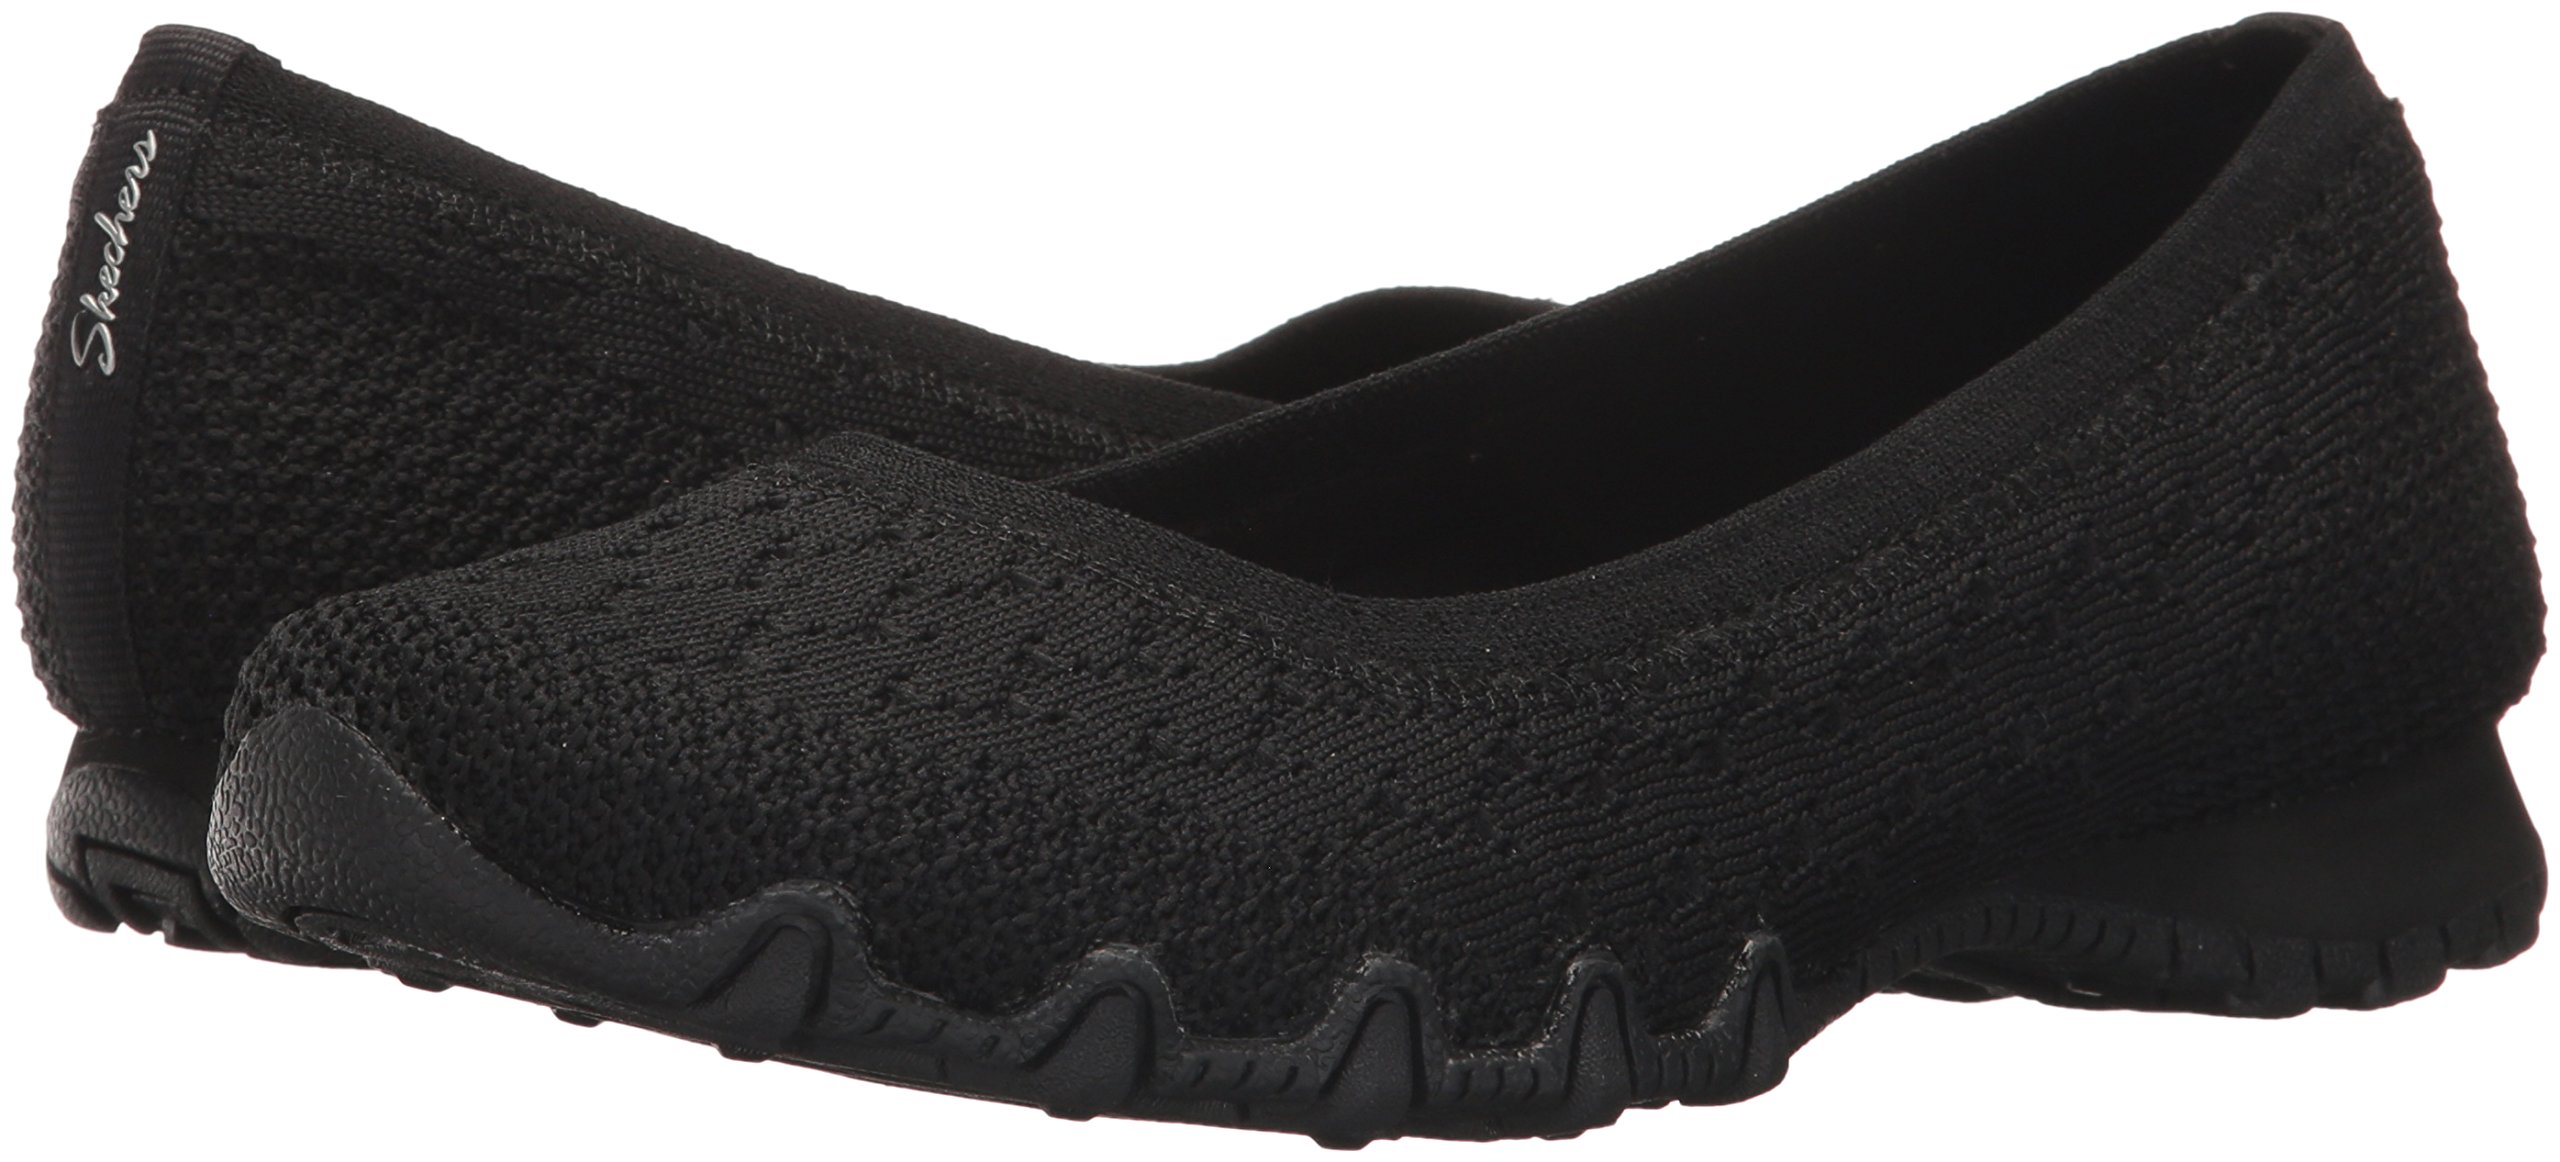 Skechers Women's Bikers-Witty Knit Ballet Flat, black, 10 Extra Wide US by Skechers (Image #6)